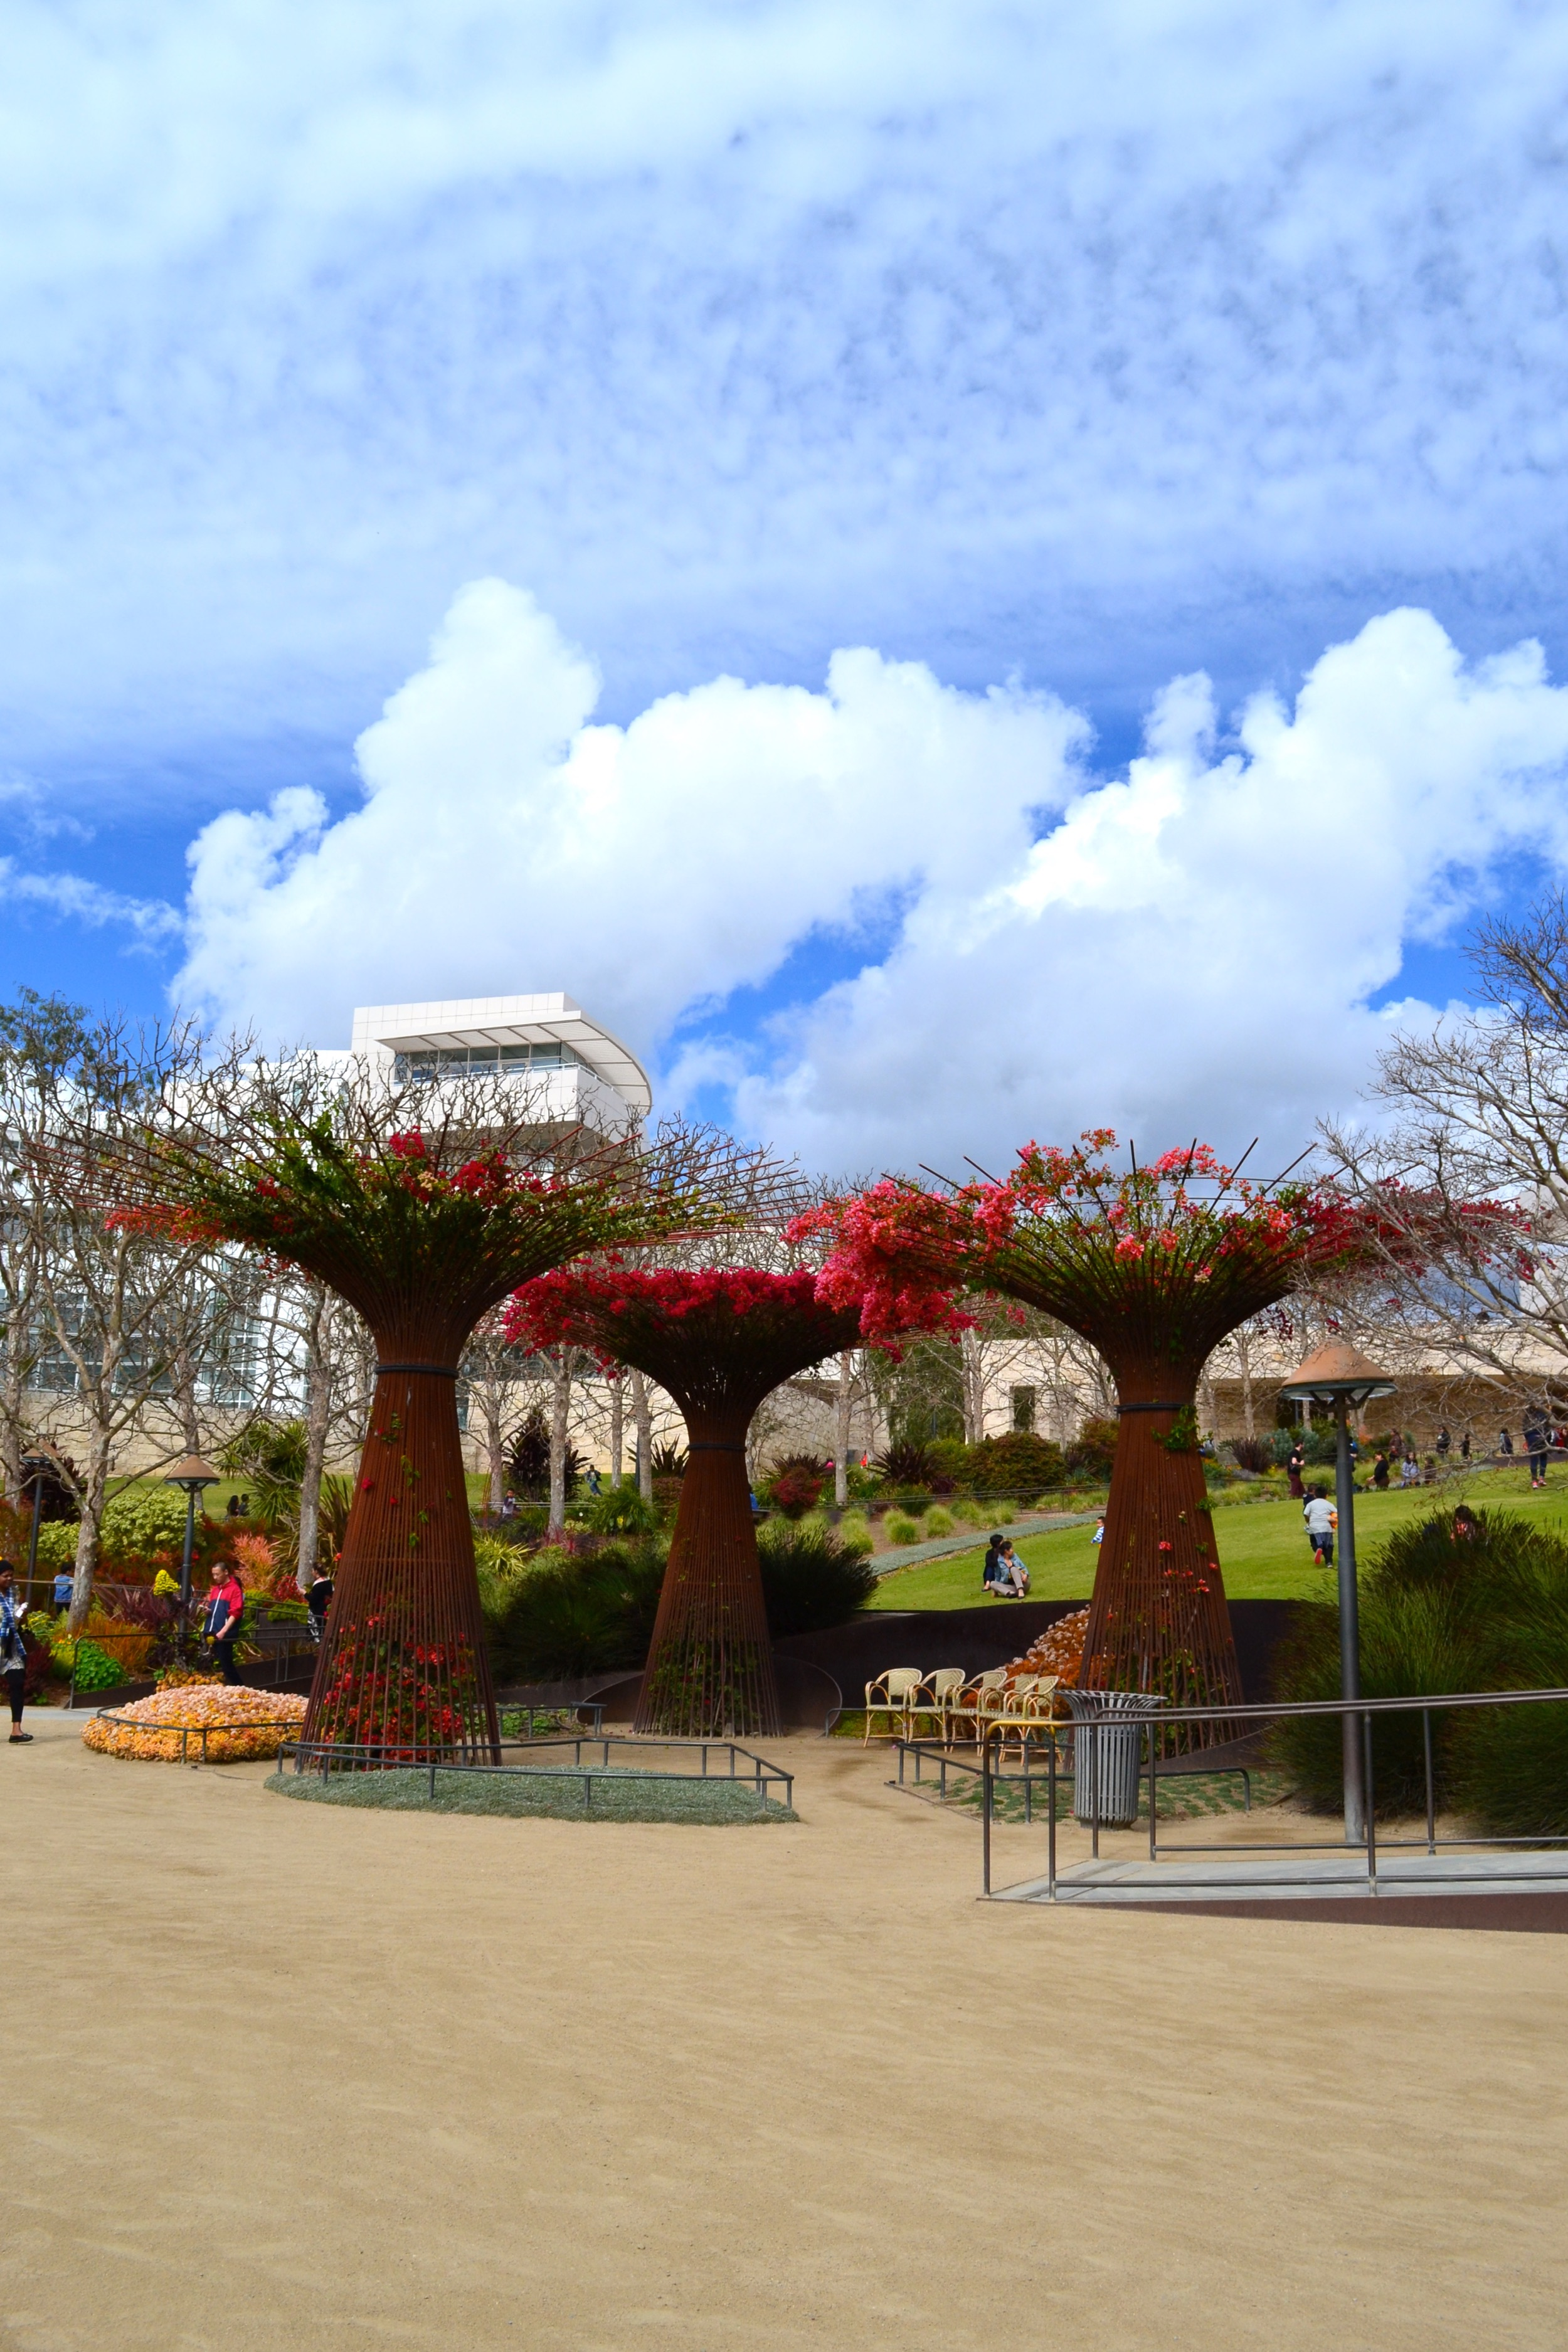 The grounds at the Getty are stunning, and you can go for free (you just have to pay for parking).